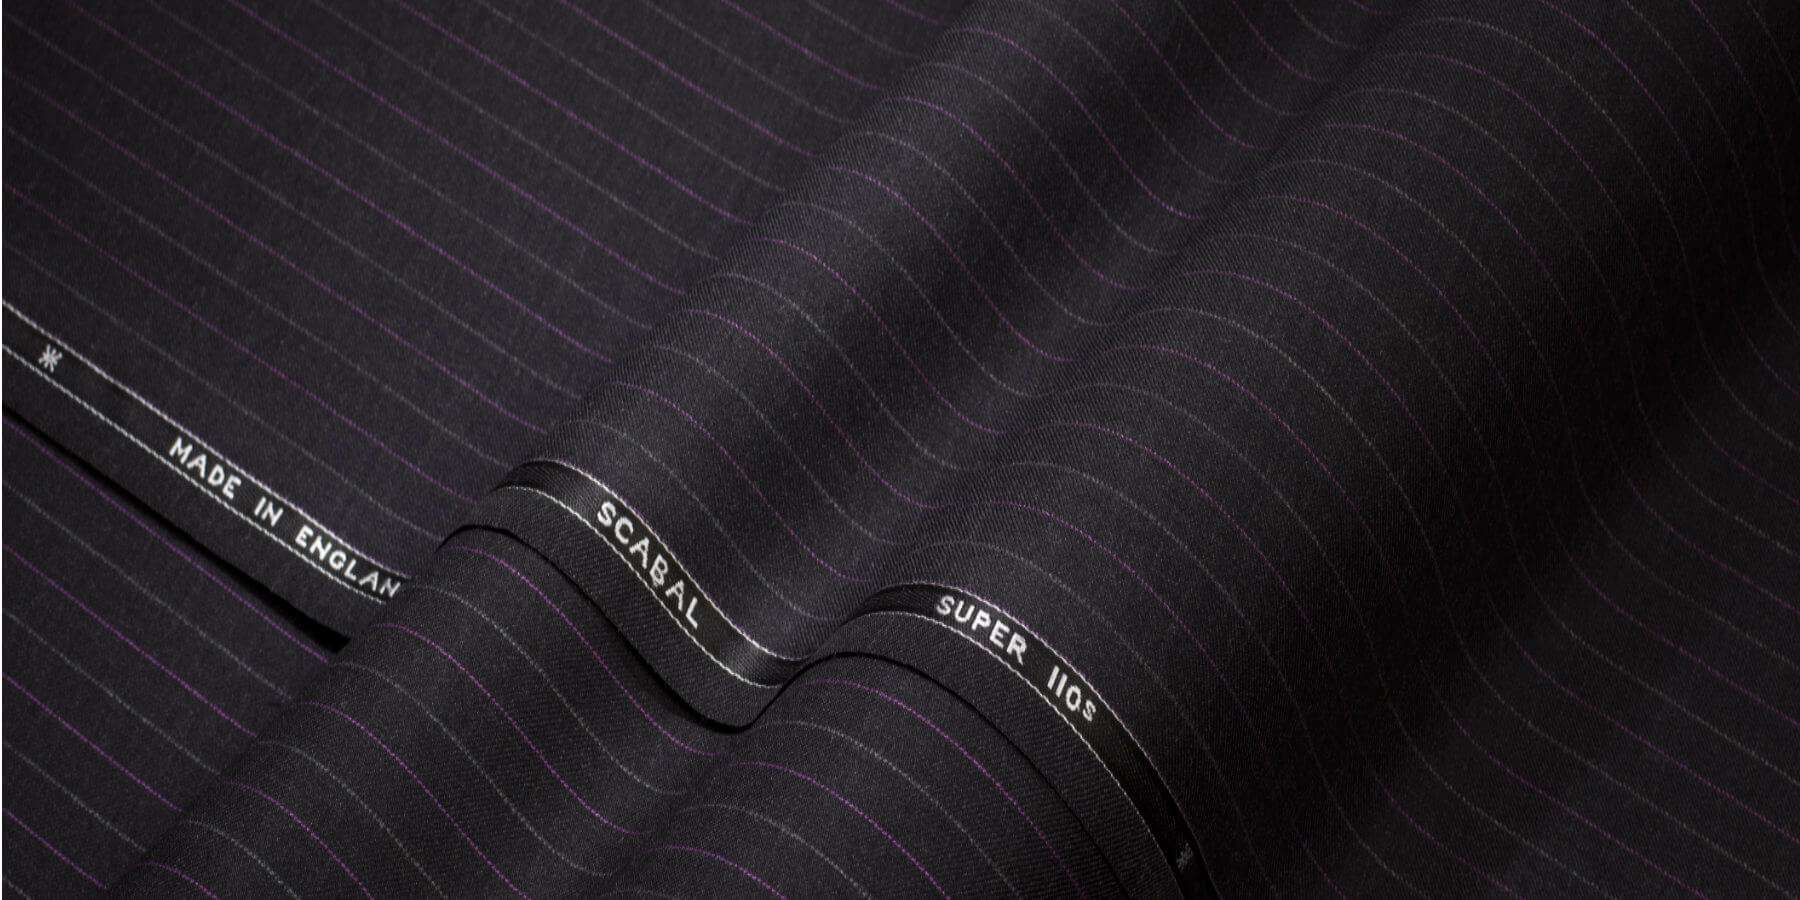 Galaxy fabric a special lustre helping to make each suit feel like a special edition